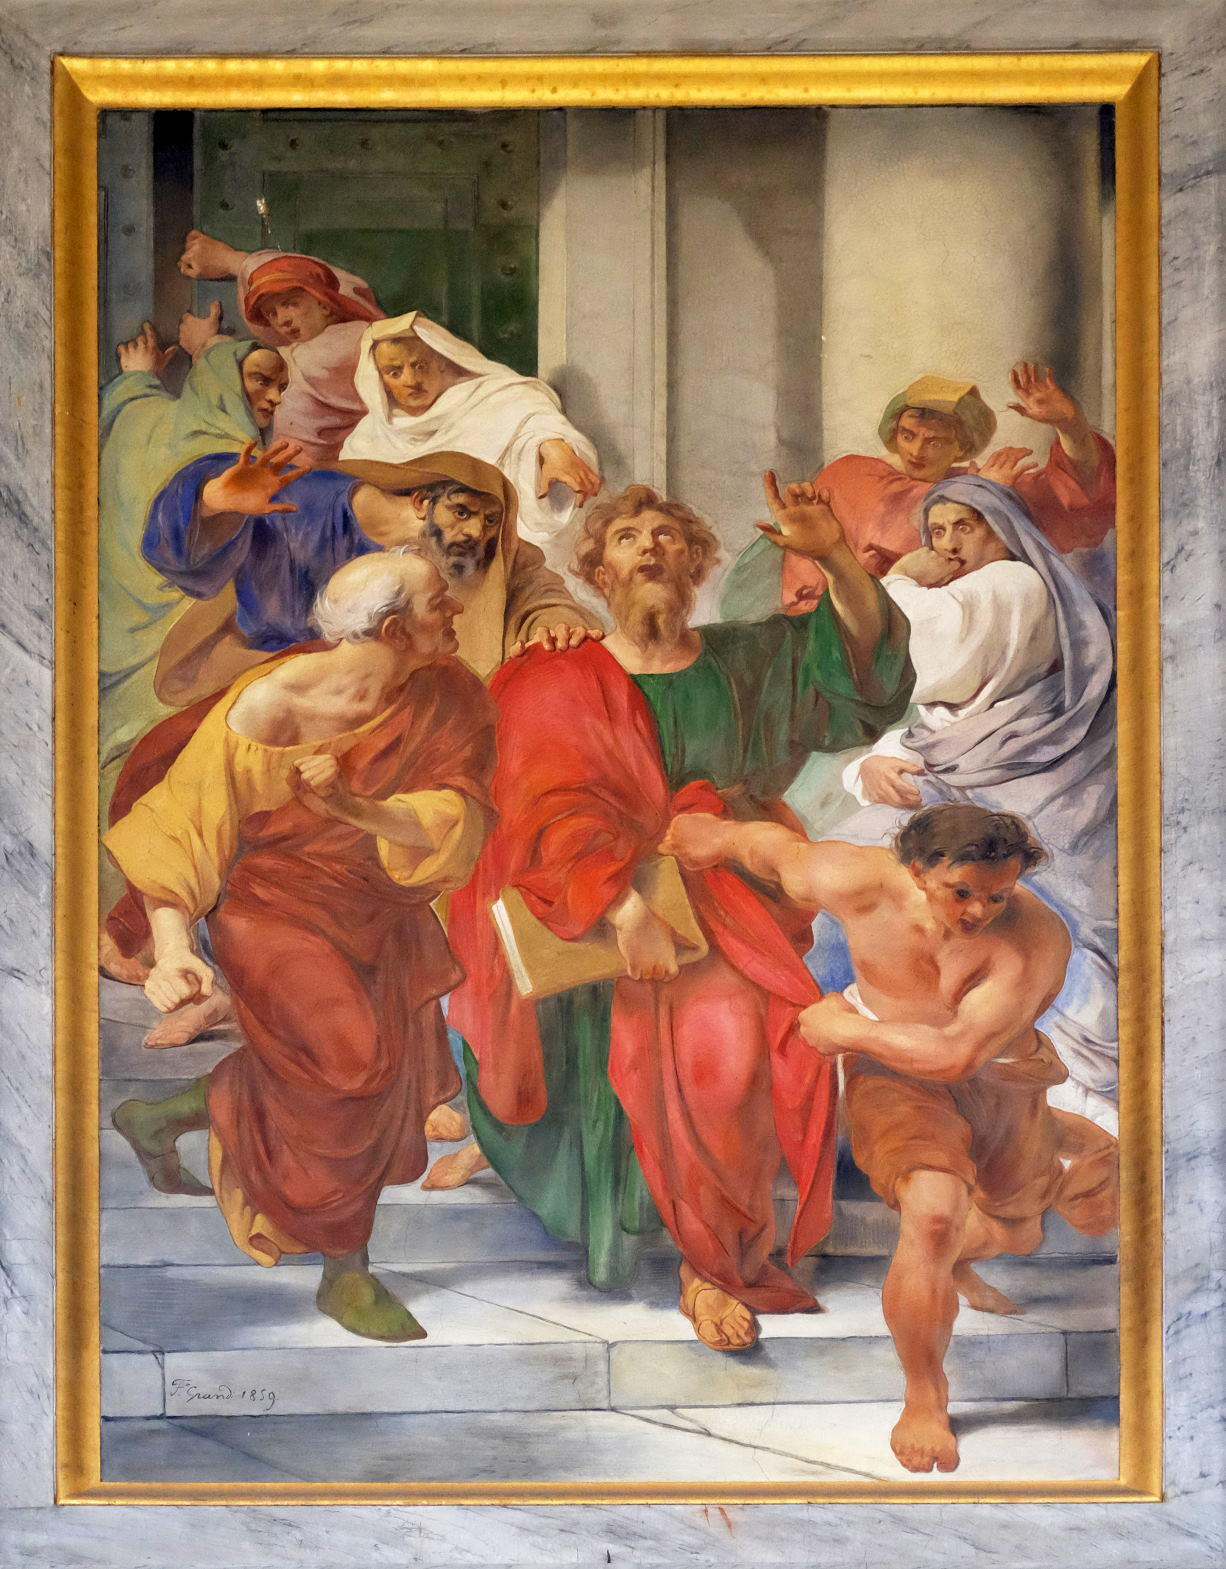 The fresco with the image of the life of St. Paul Paul is Dragged from the Temple, basilica of Saint Paul Outside the Walls